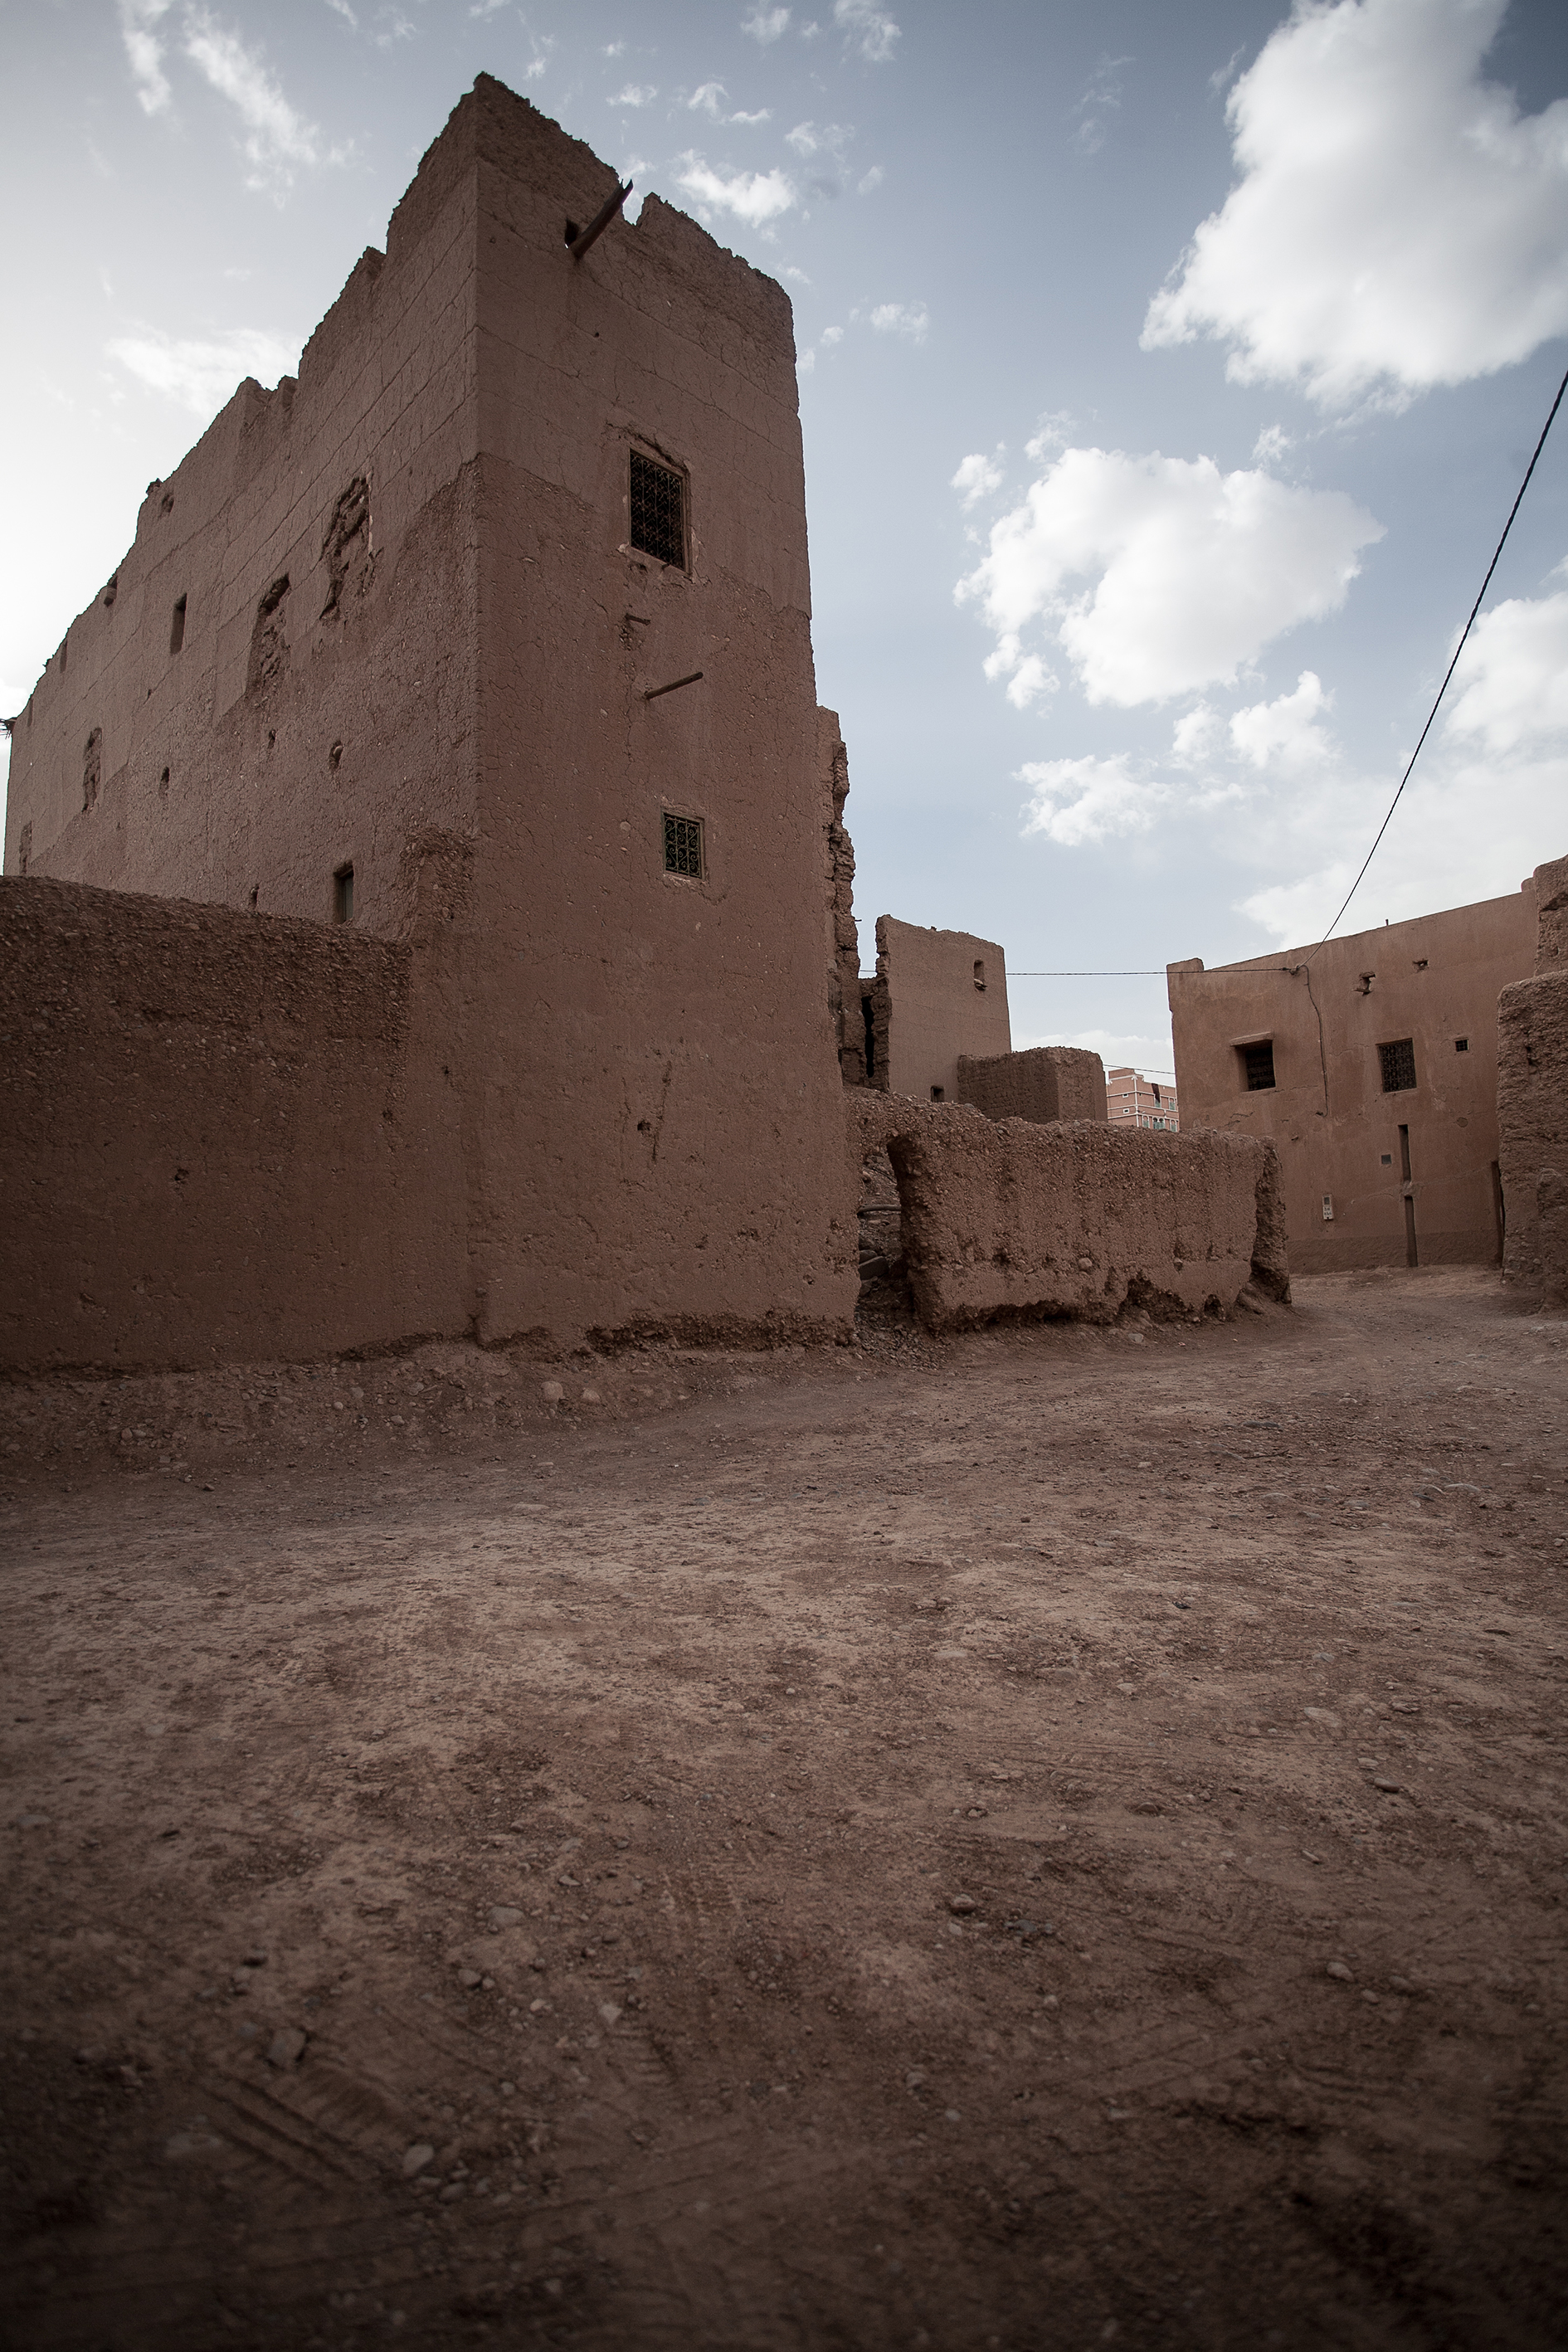 reference of rural Moroccan architecture. 2x1